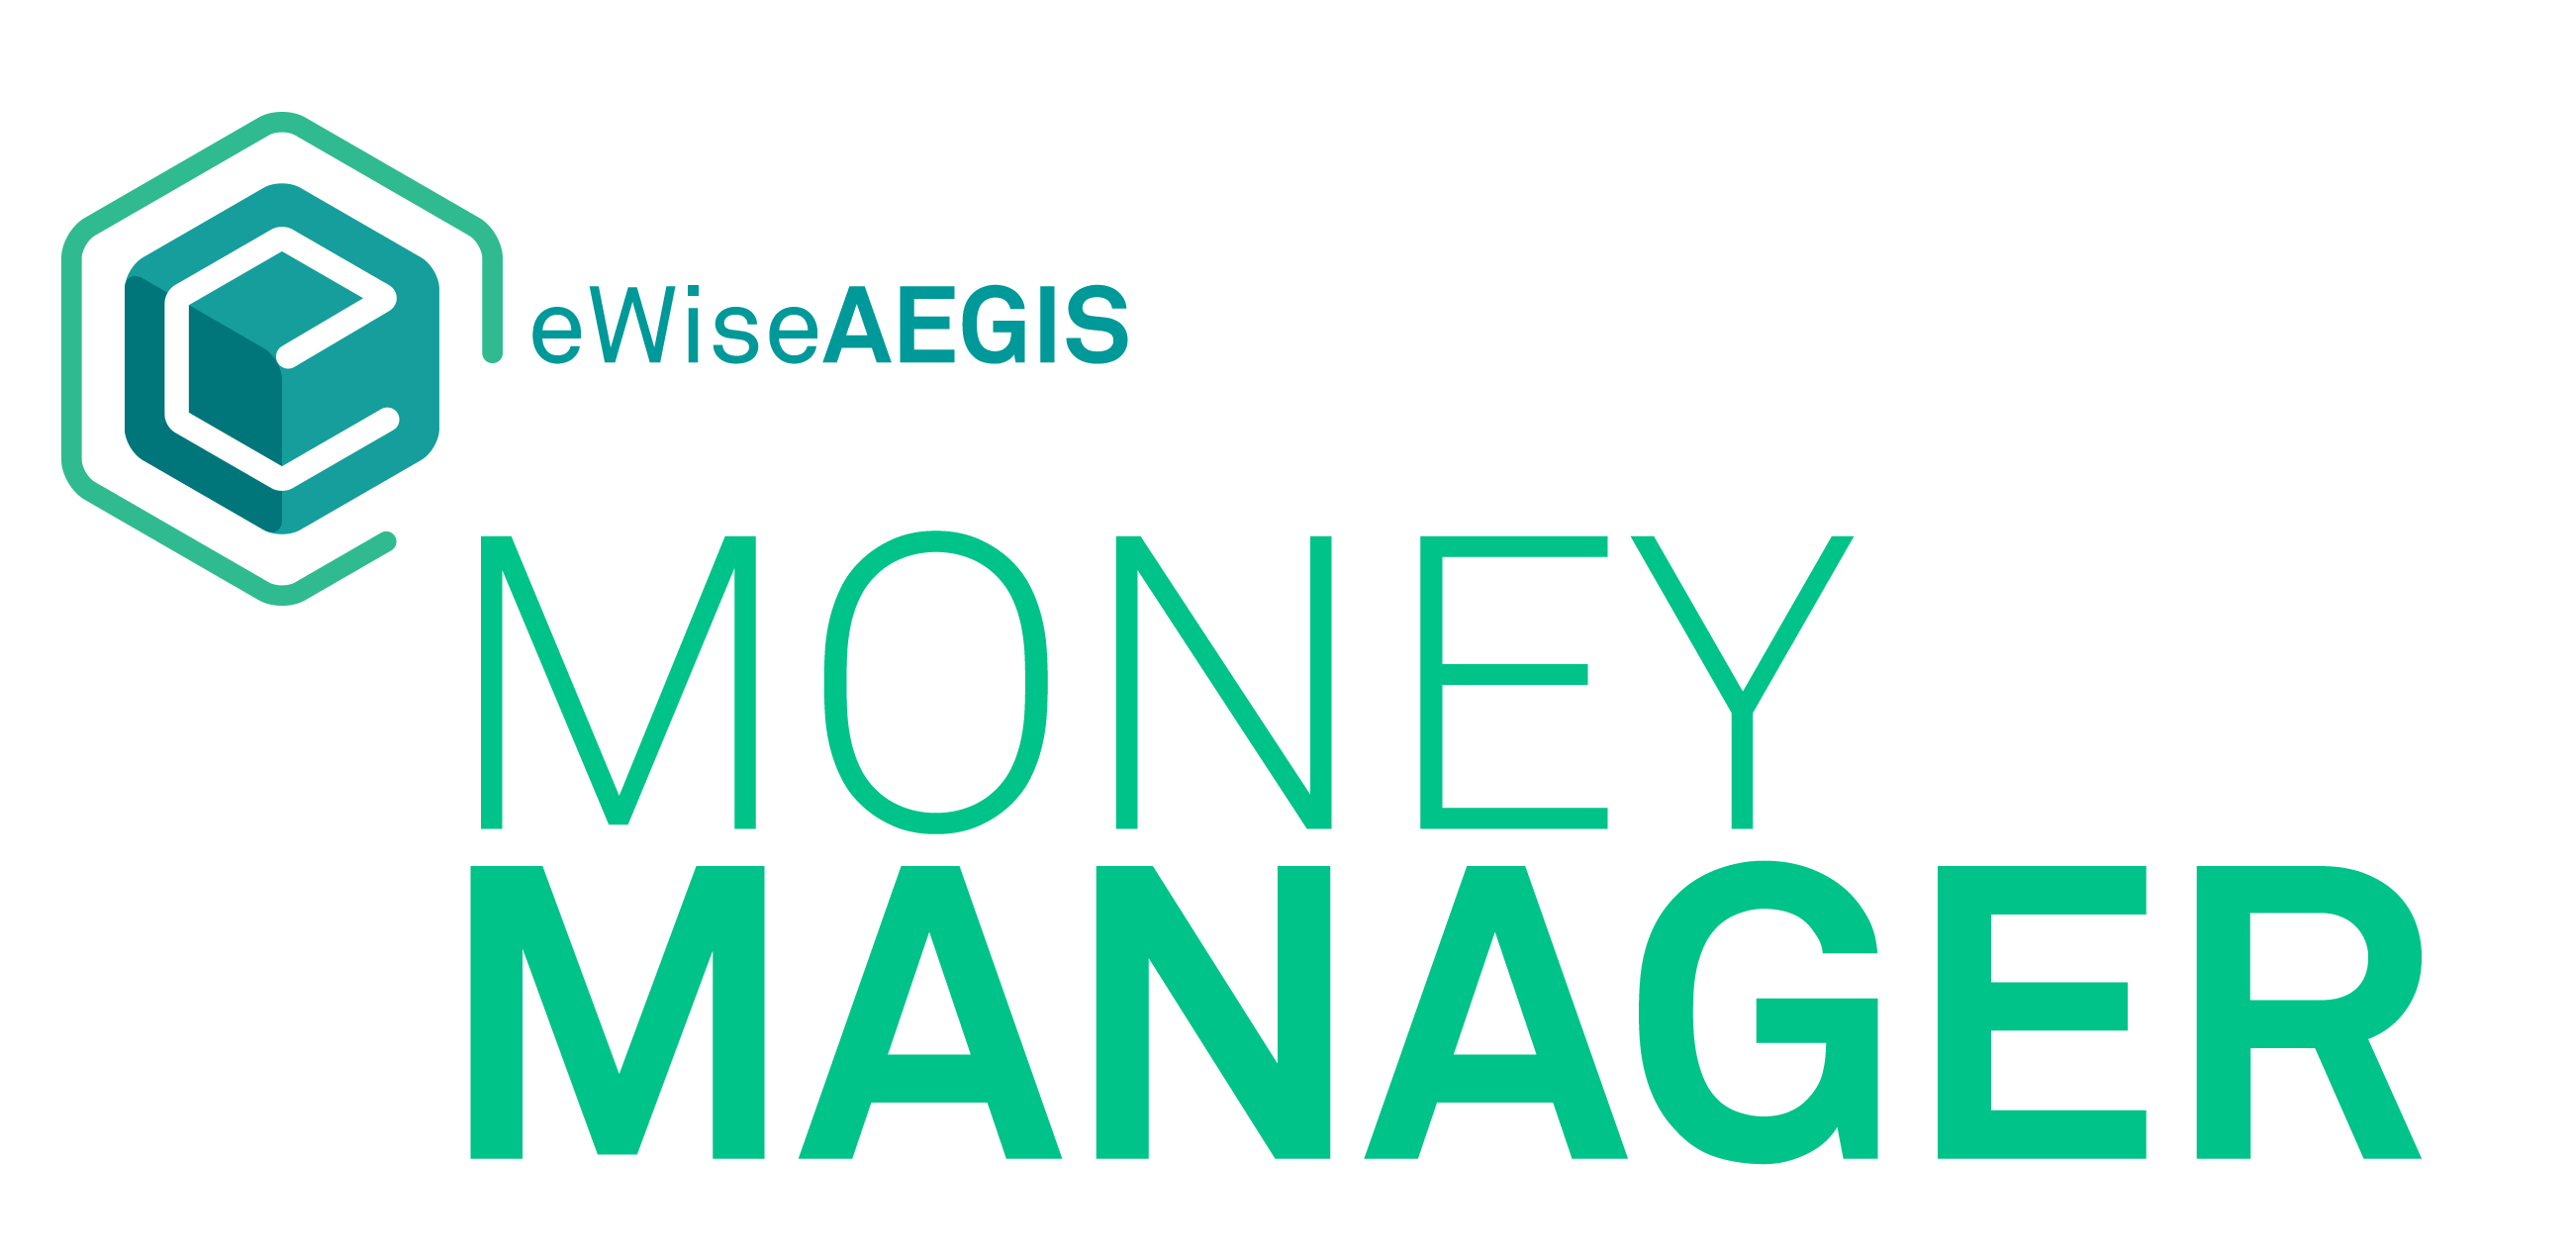 ewise_aegis_moneymanager.png